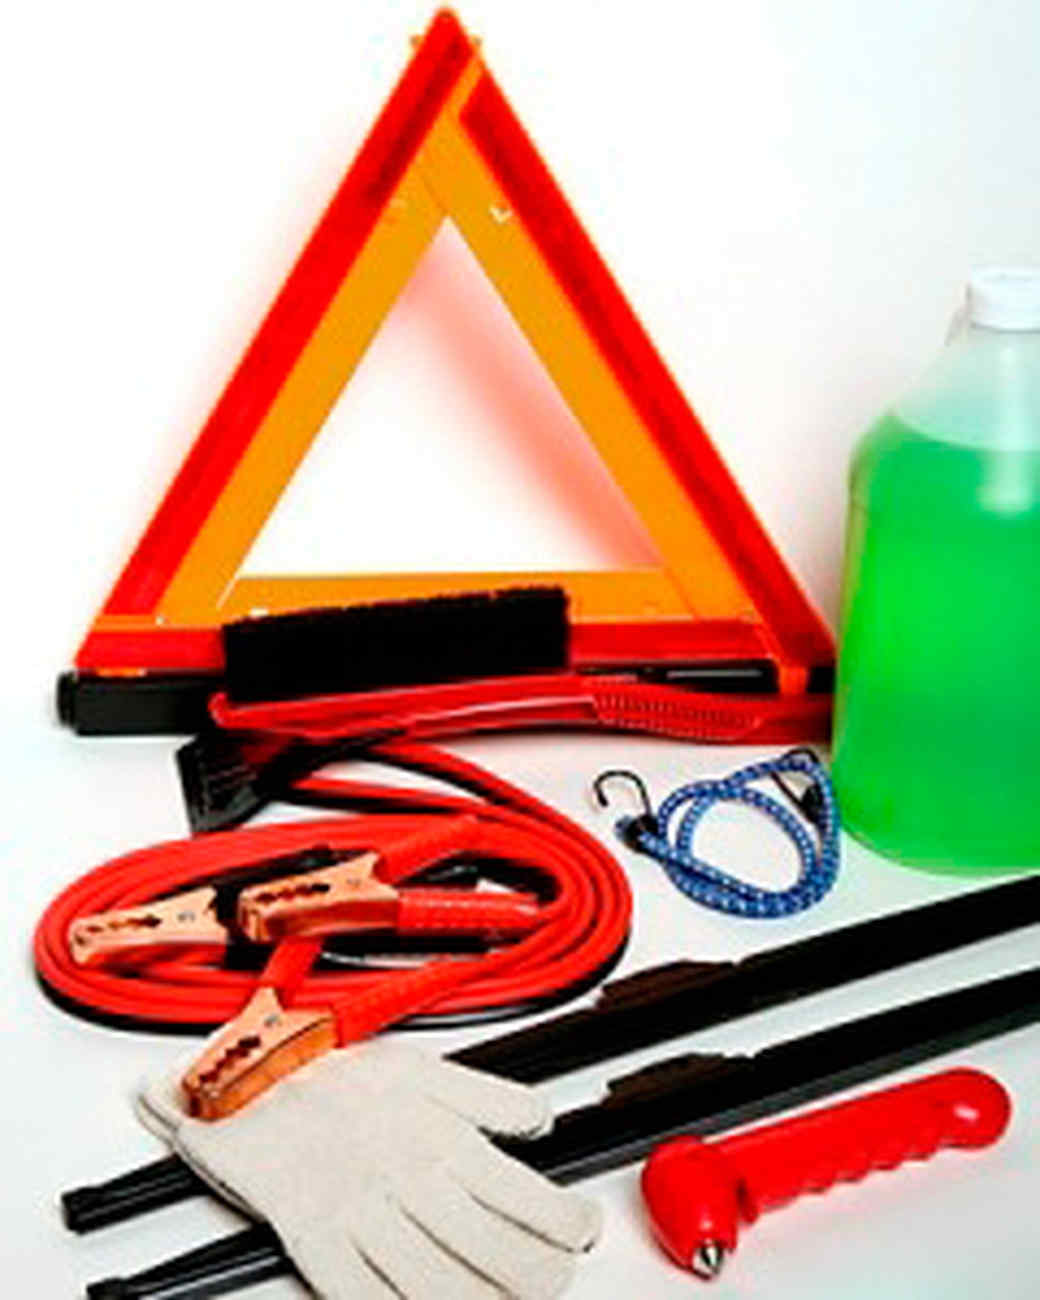 car-safety-kit-2057-1215.jpg